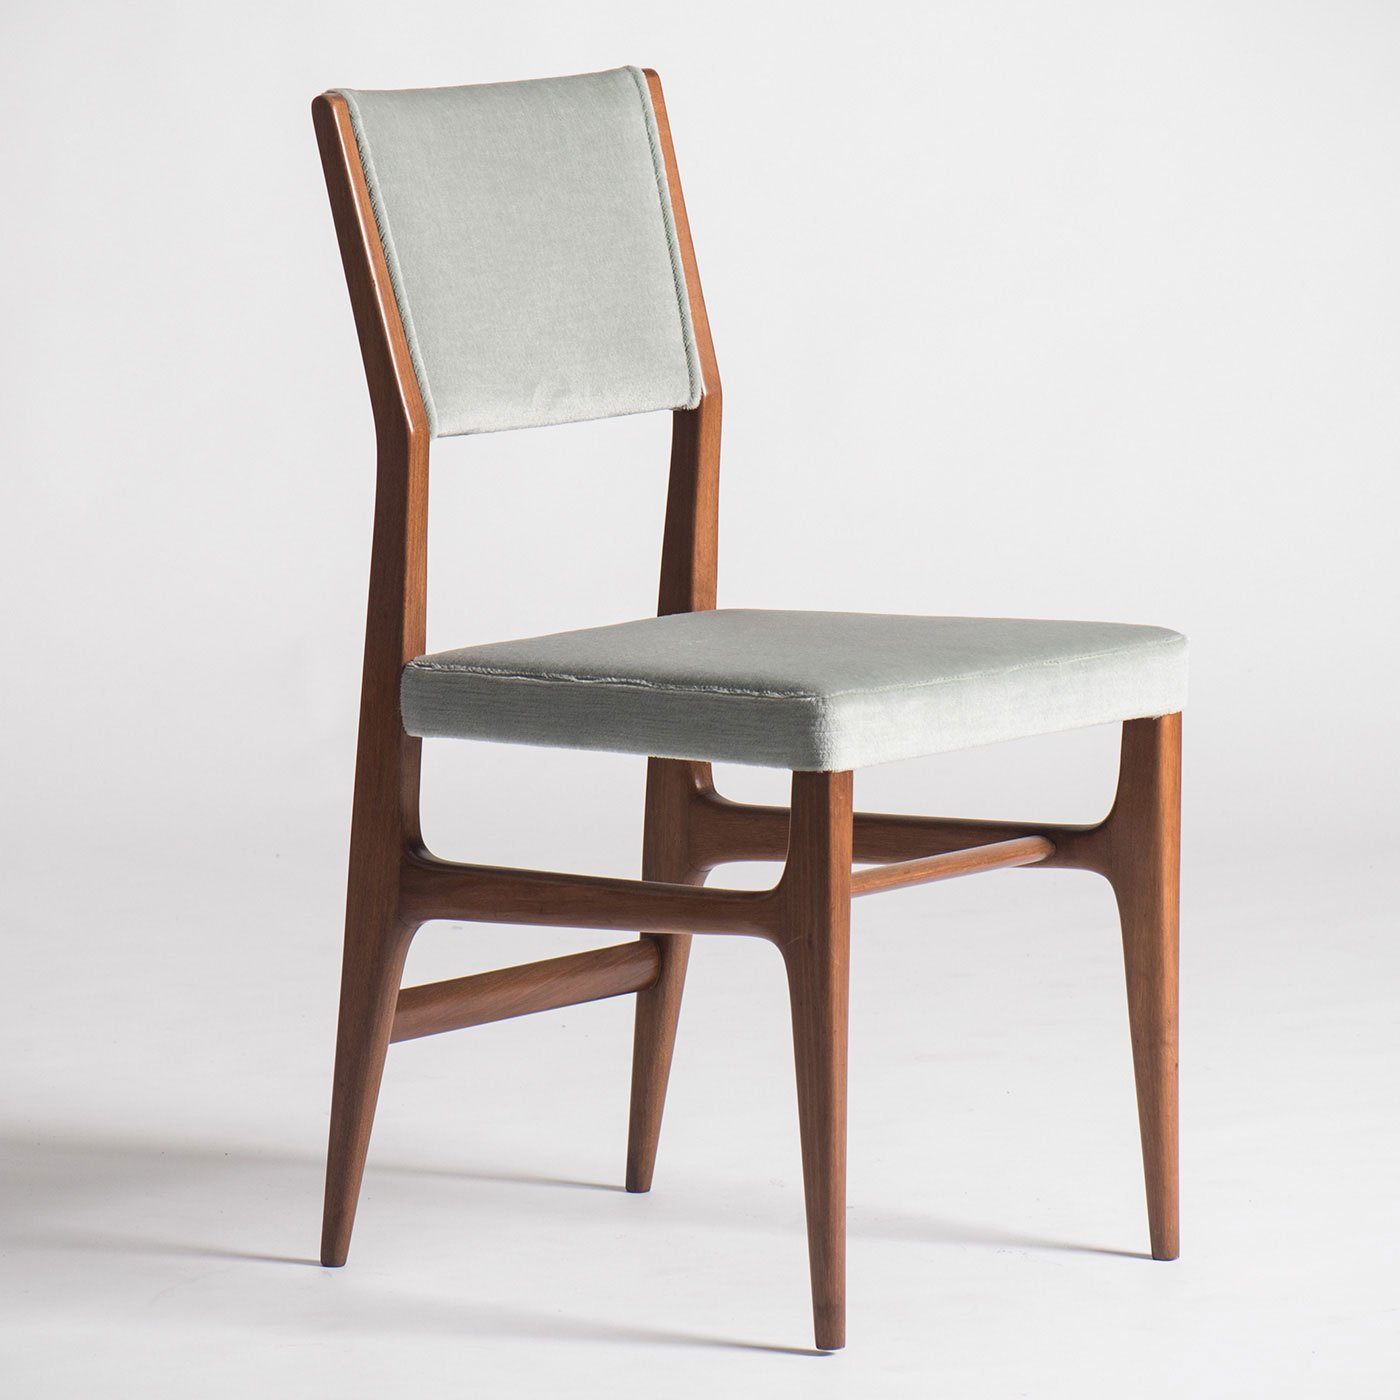 Gio Ponti |  Dining chairs model 111 - set of 6